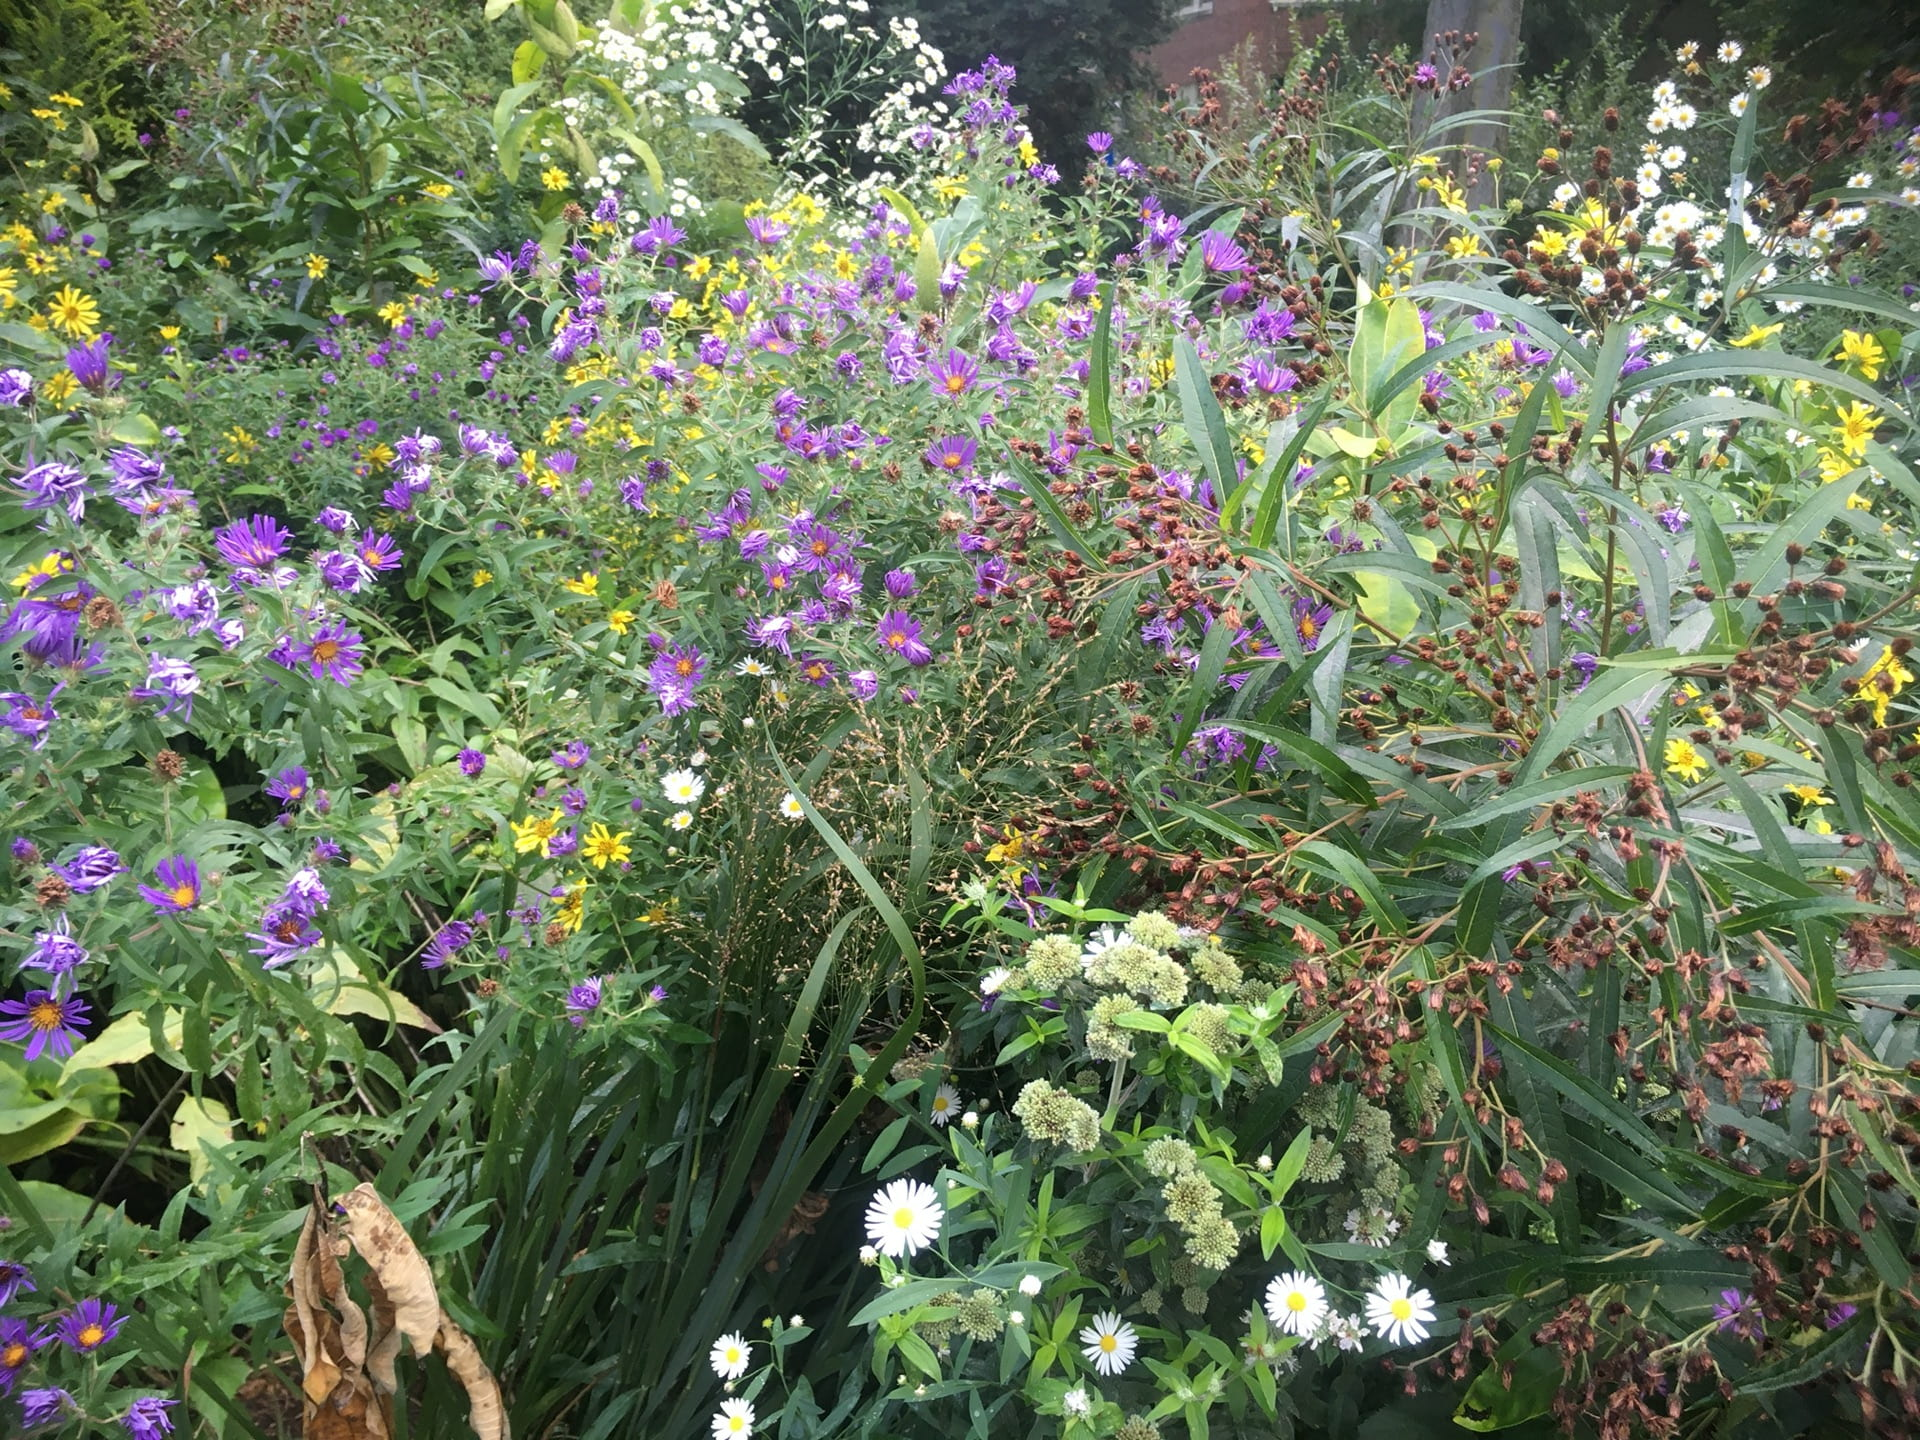 A complex mix of plants from the Aster family reaches its peak in mid autumn.